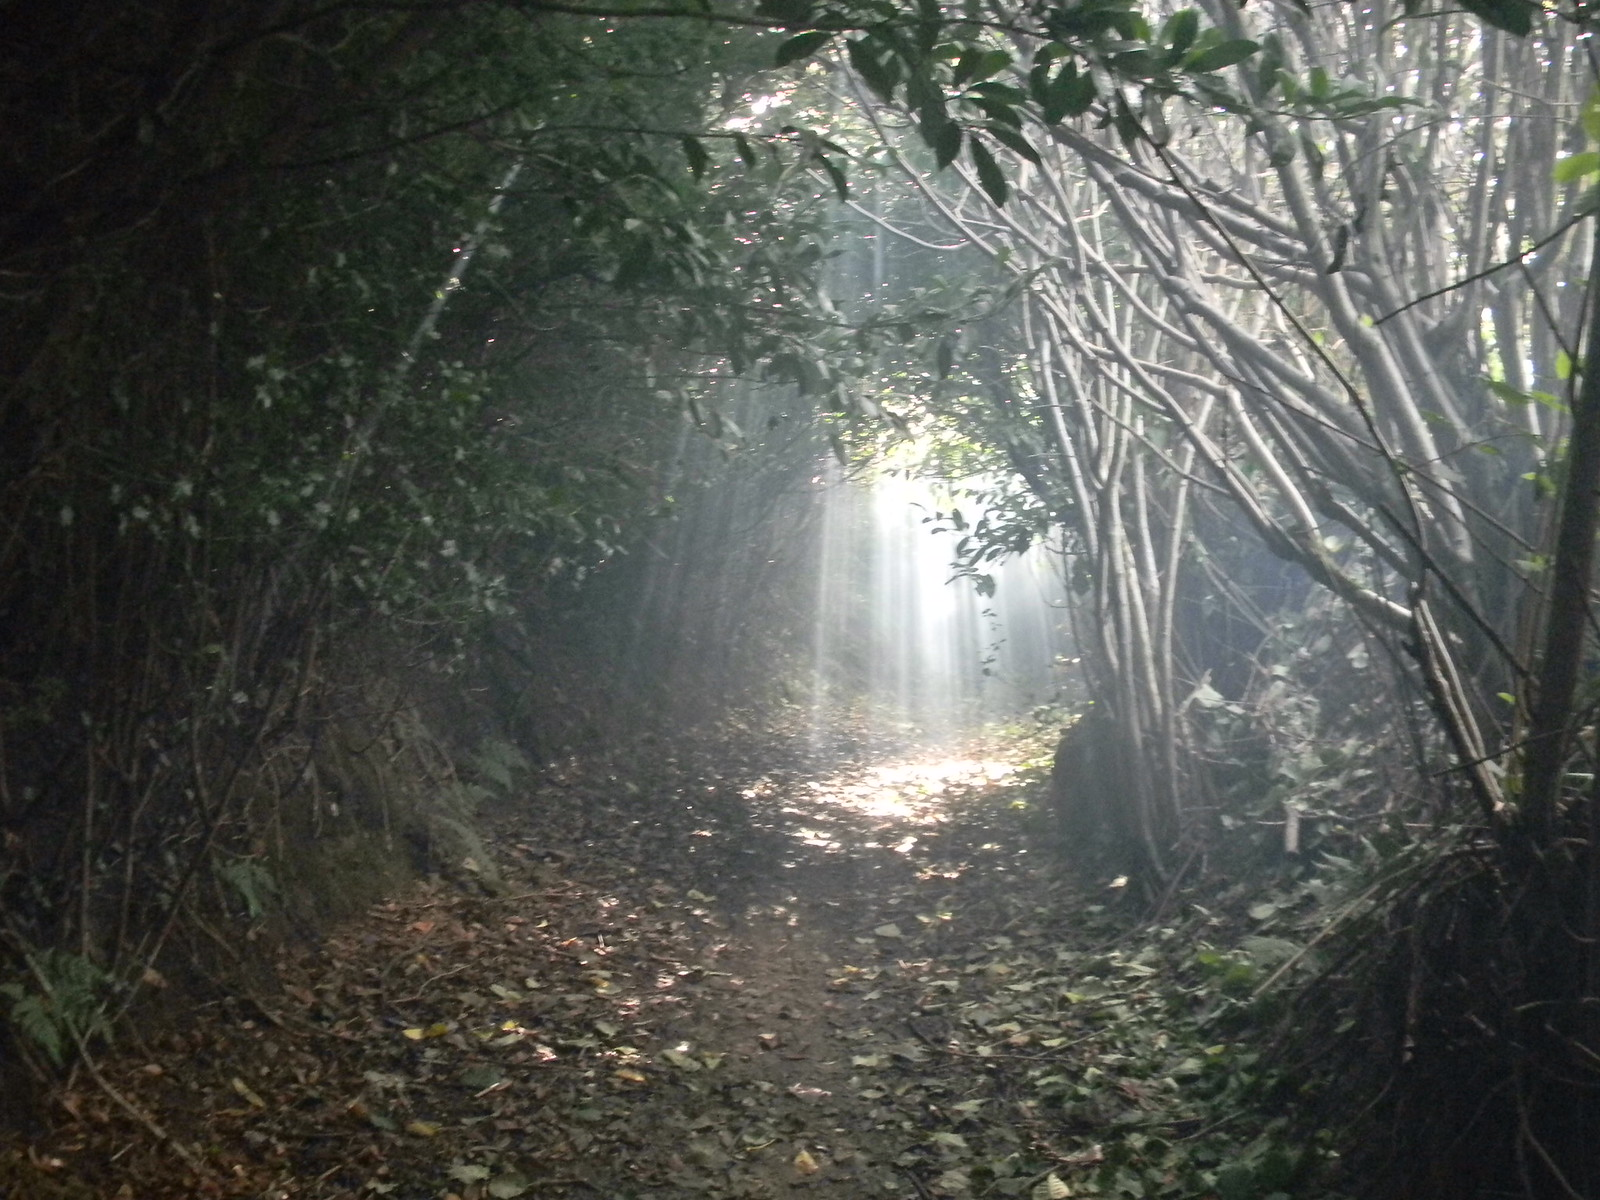 Fairy Dell Smoke drifts though sumbeams in bridleway tunnel. Haslemere Circular